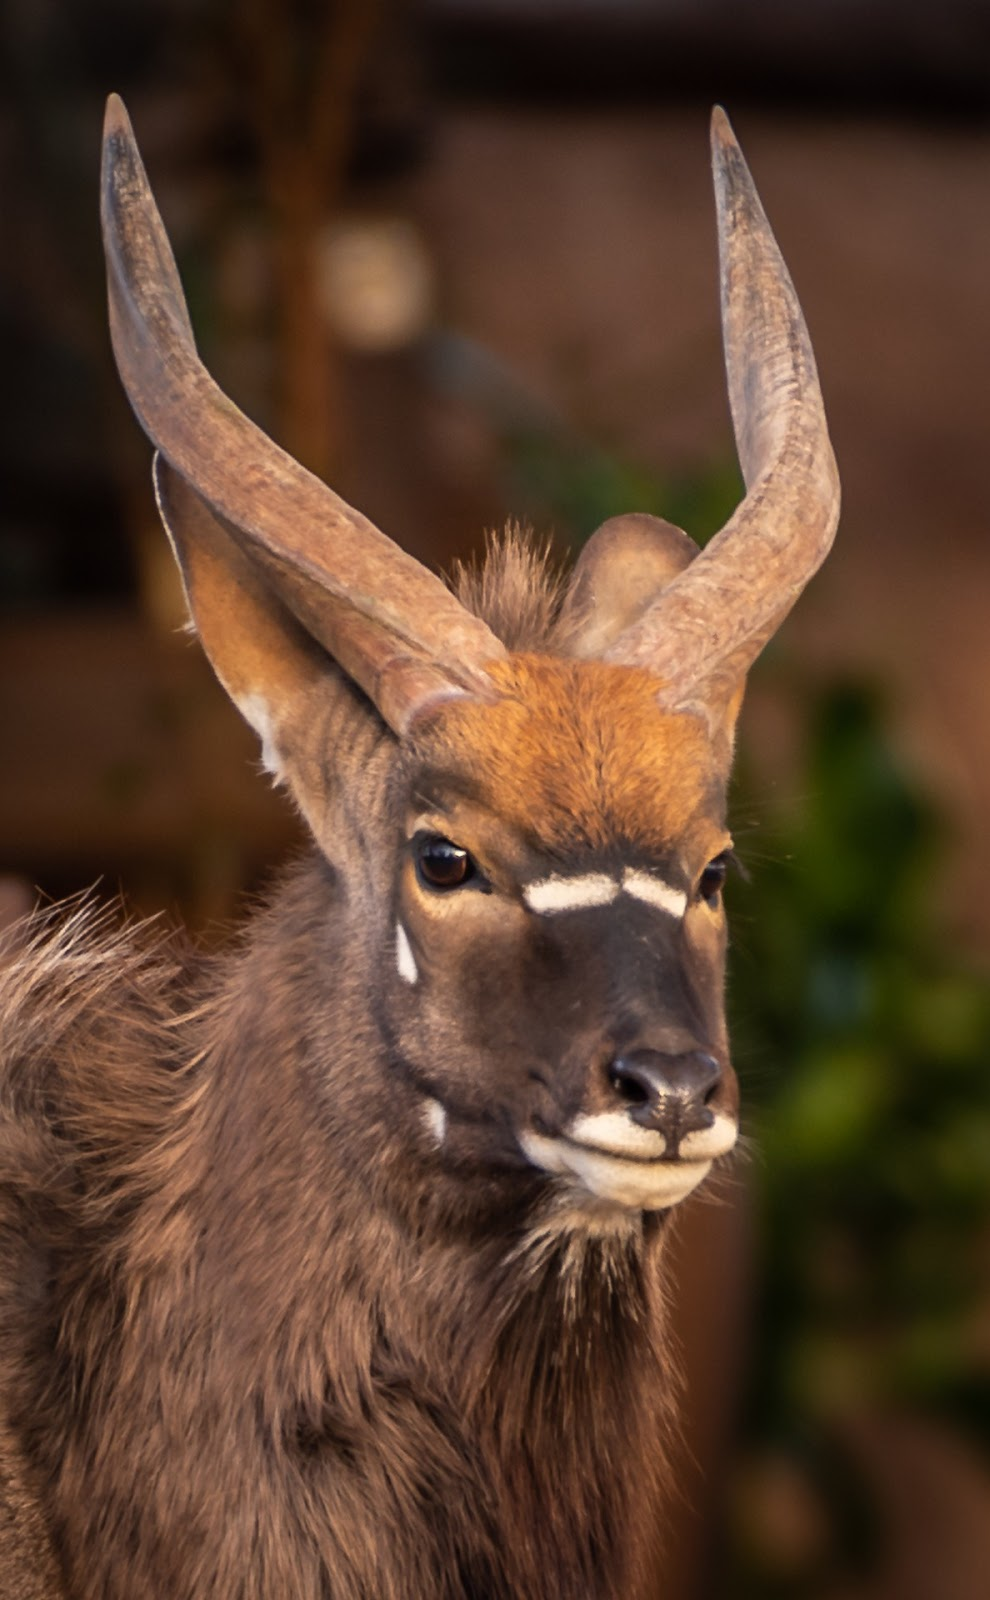 Portrait picture of a nyala antelope.